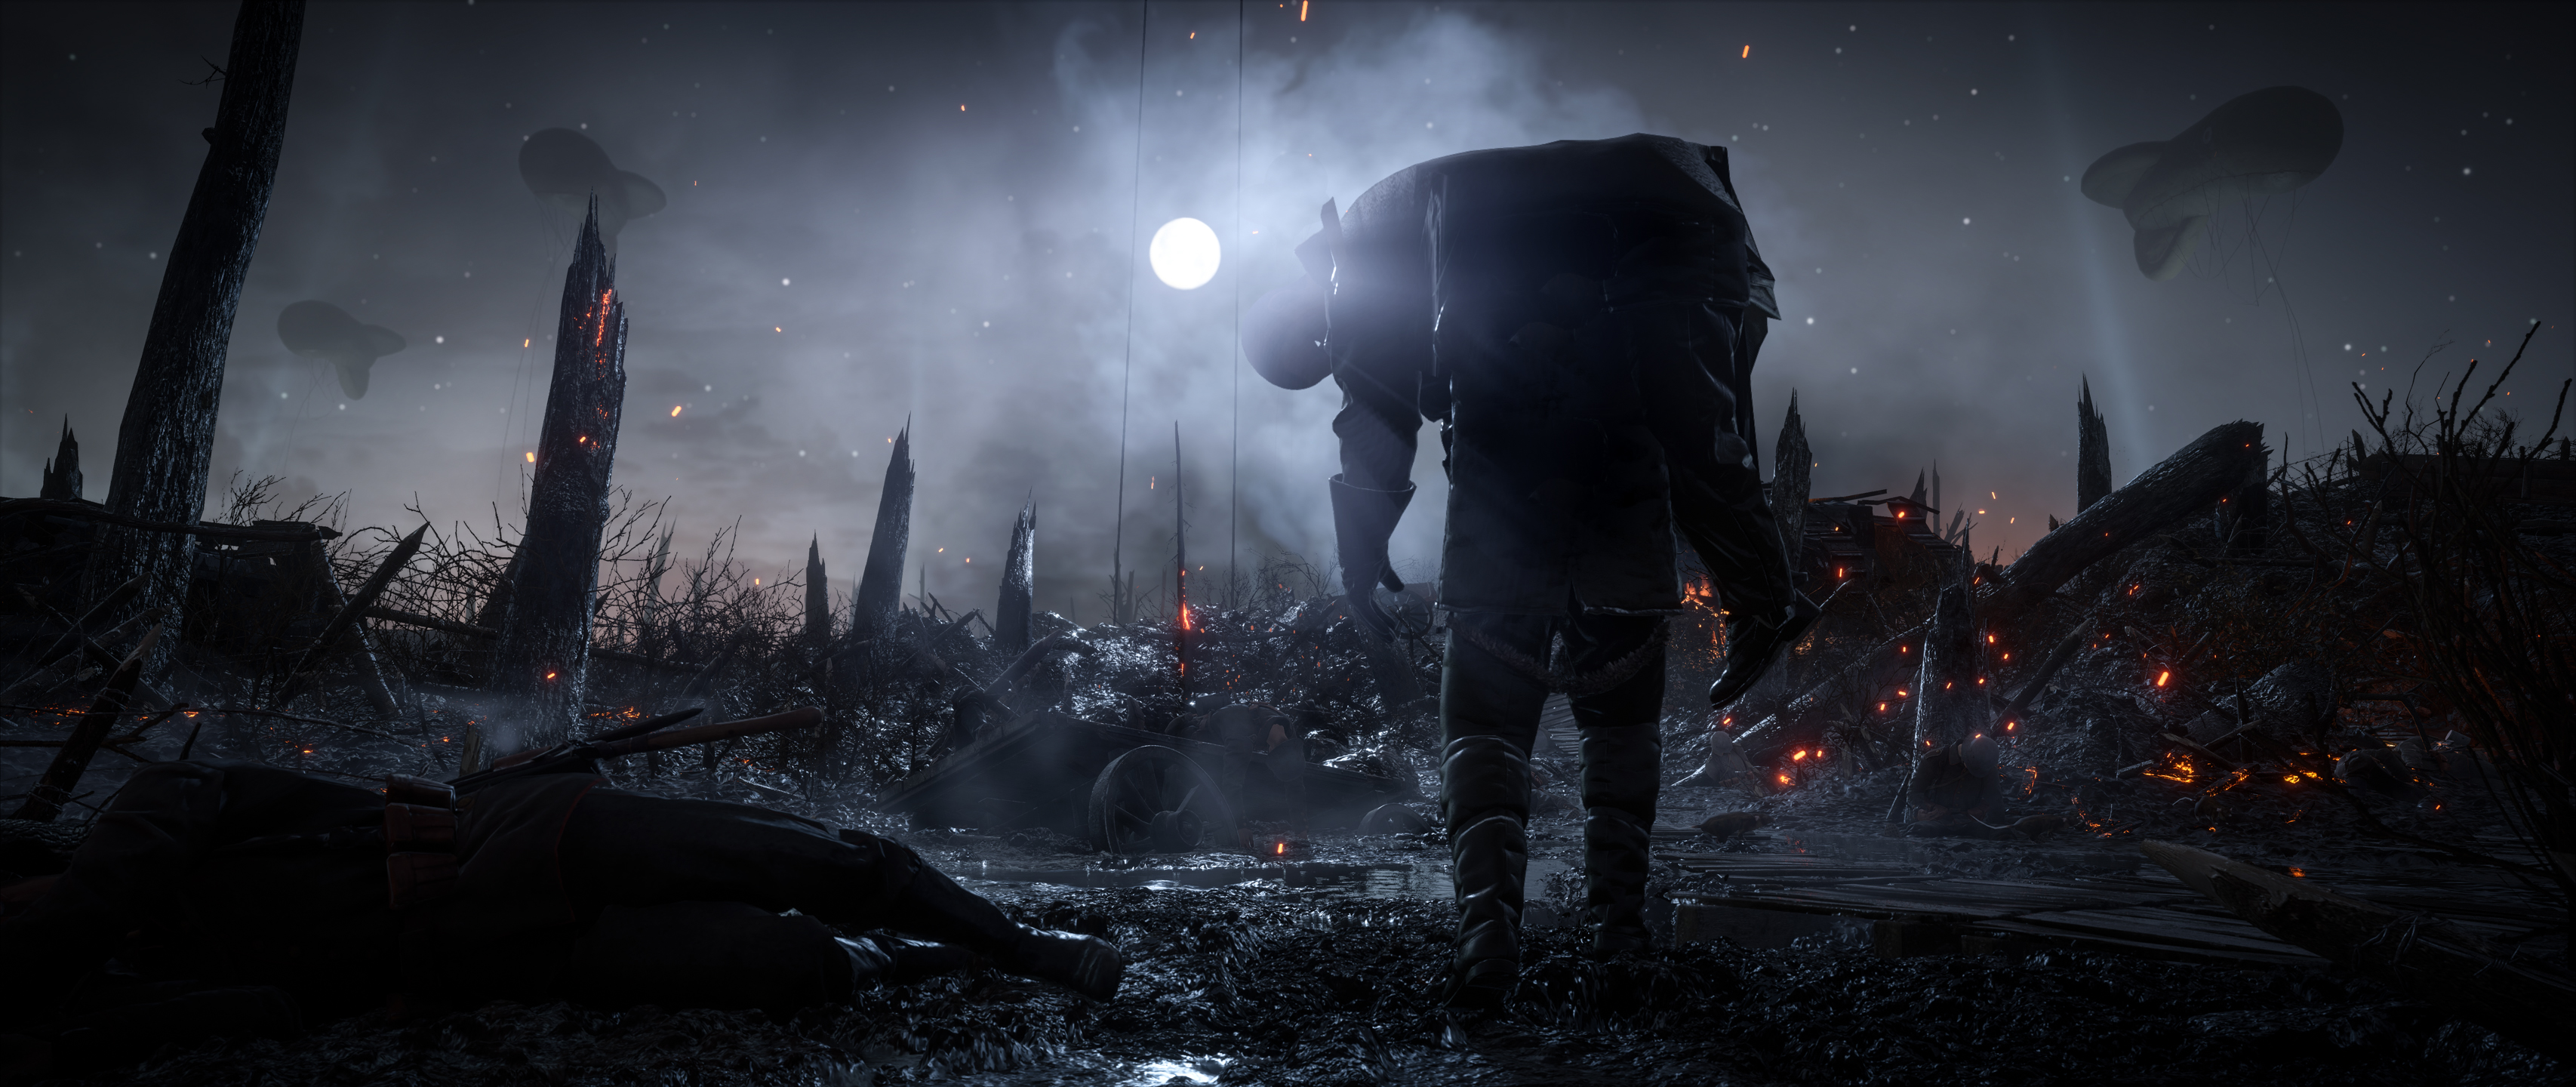 Hd Wallpapers Images: Battlefield 1 HD Wallpapers, Pictures, Images